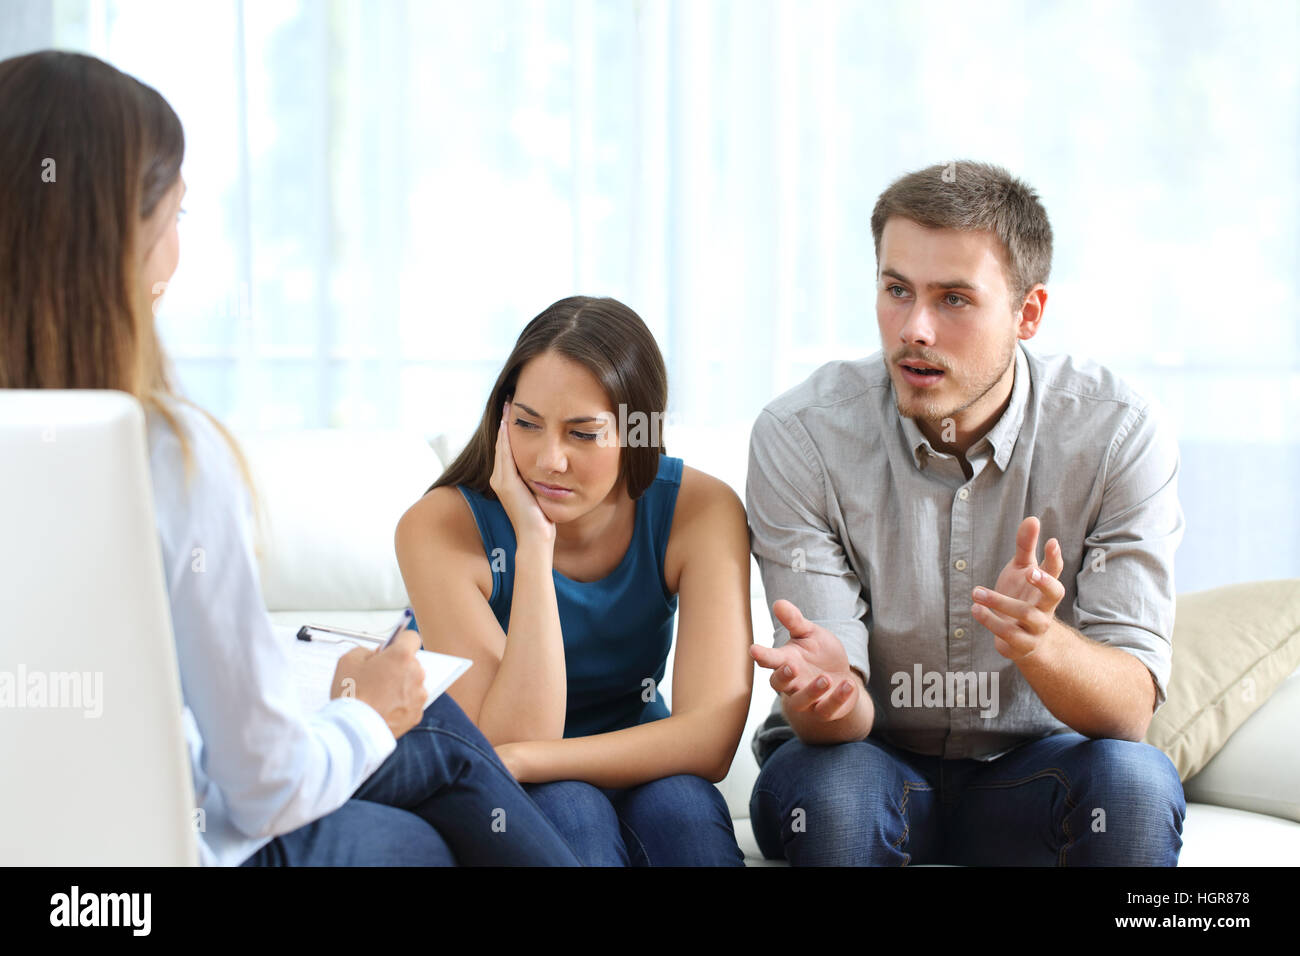 Angry husband and sad wife talking with a marriage counselor before breaking up sitting on a sofa at home - Stock Image